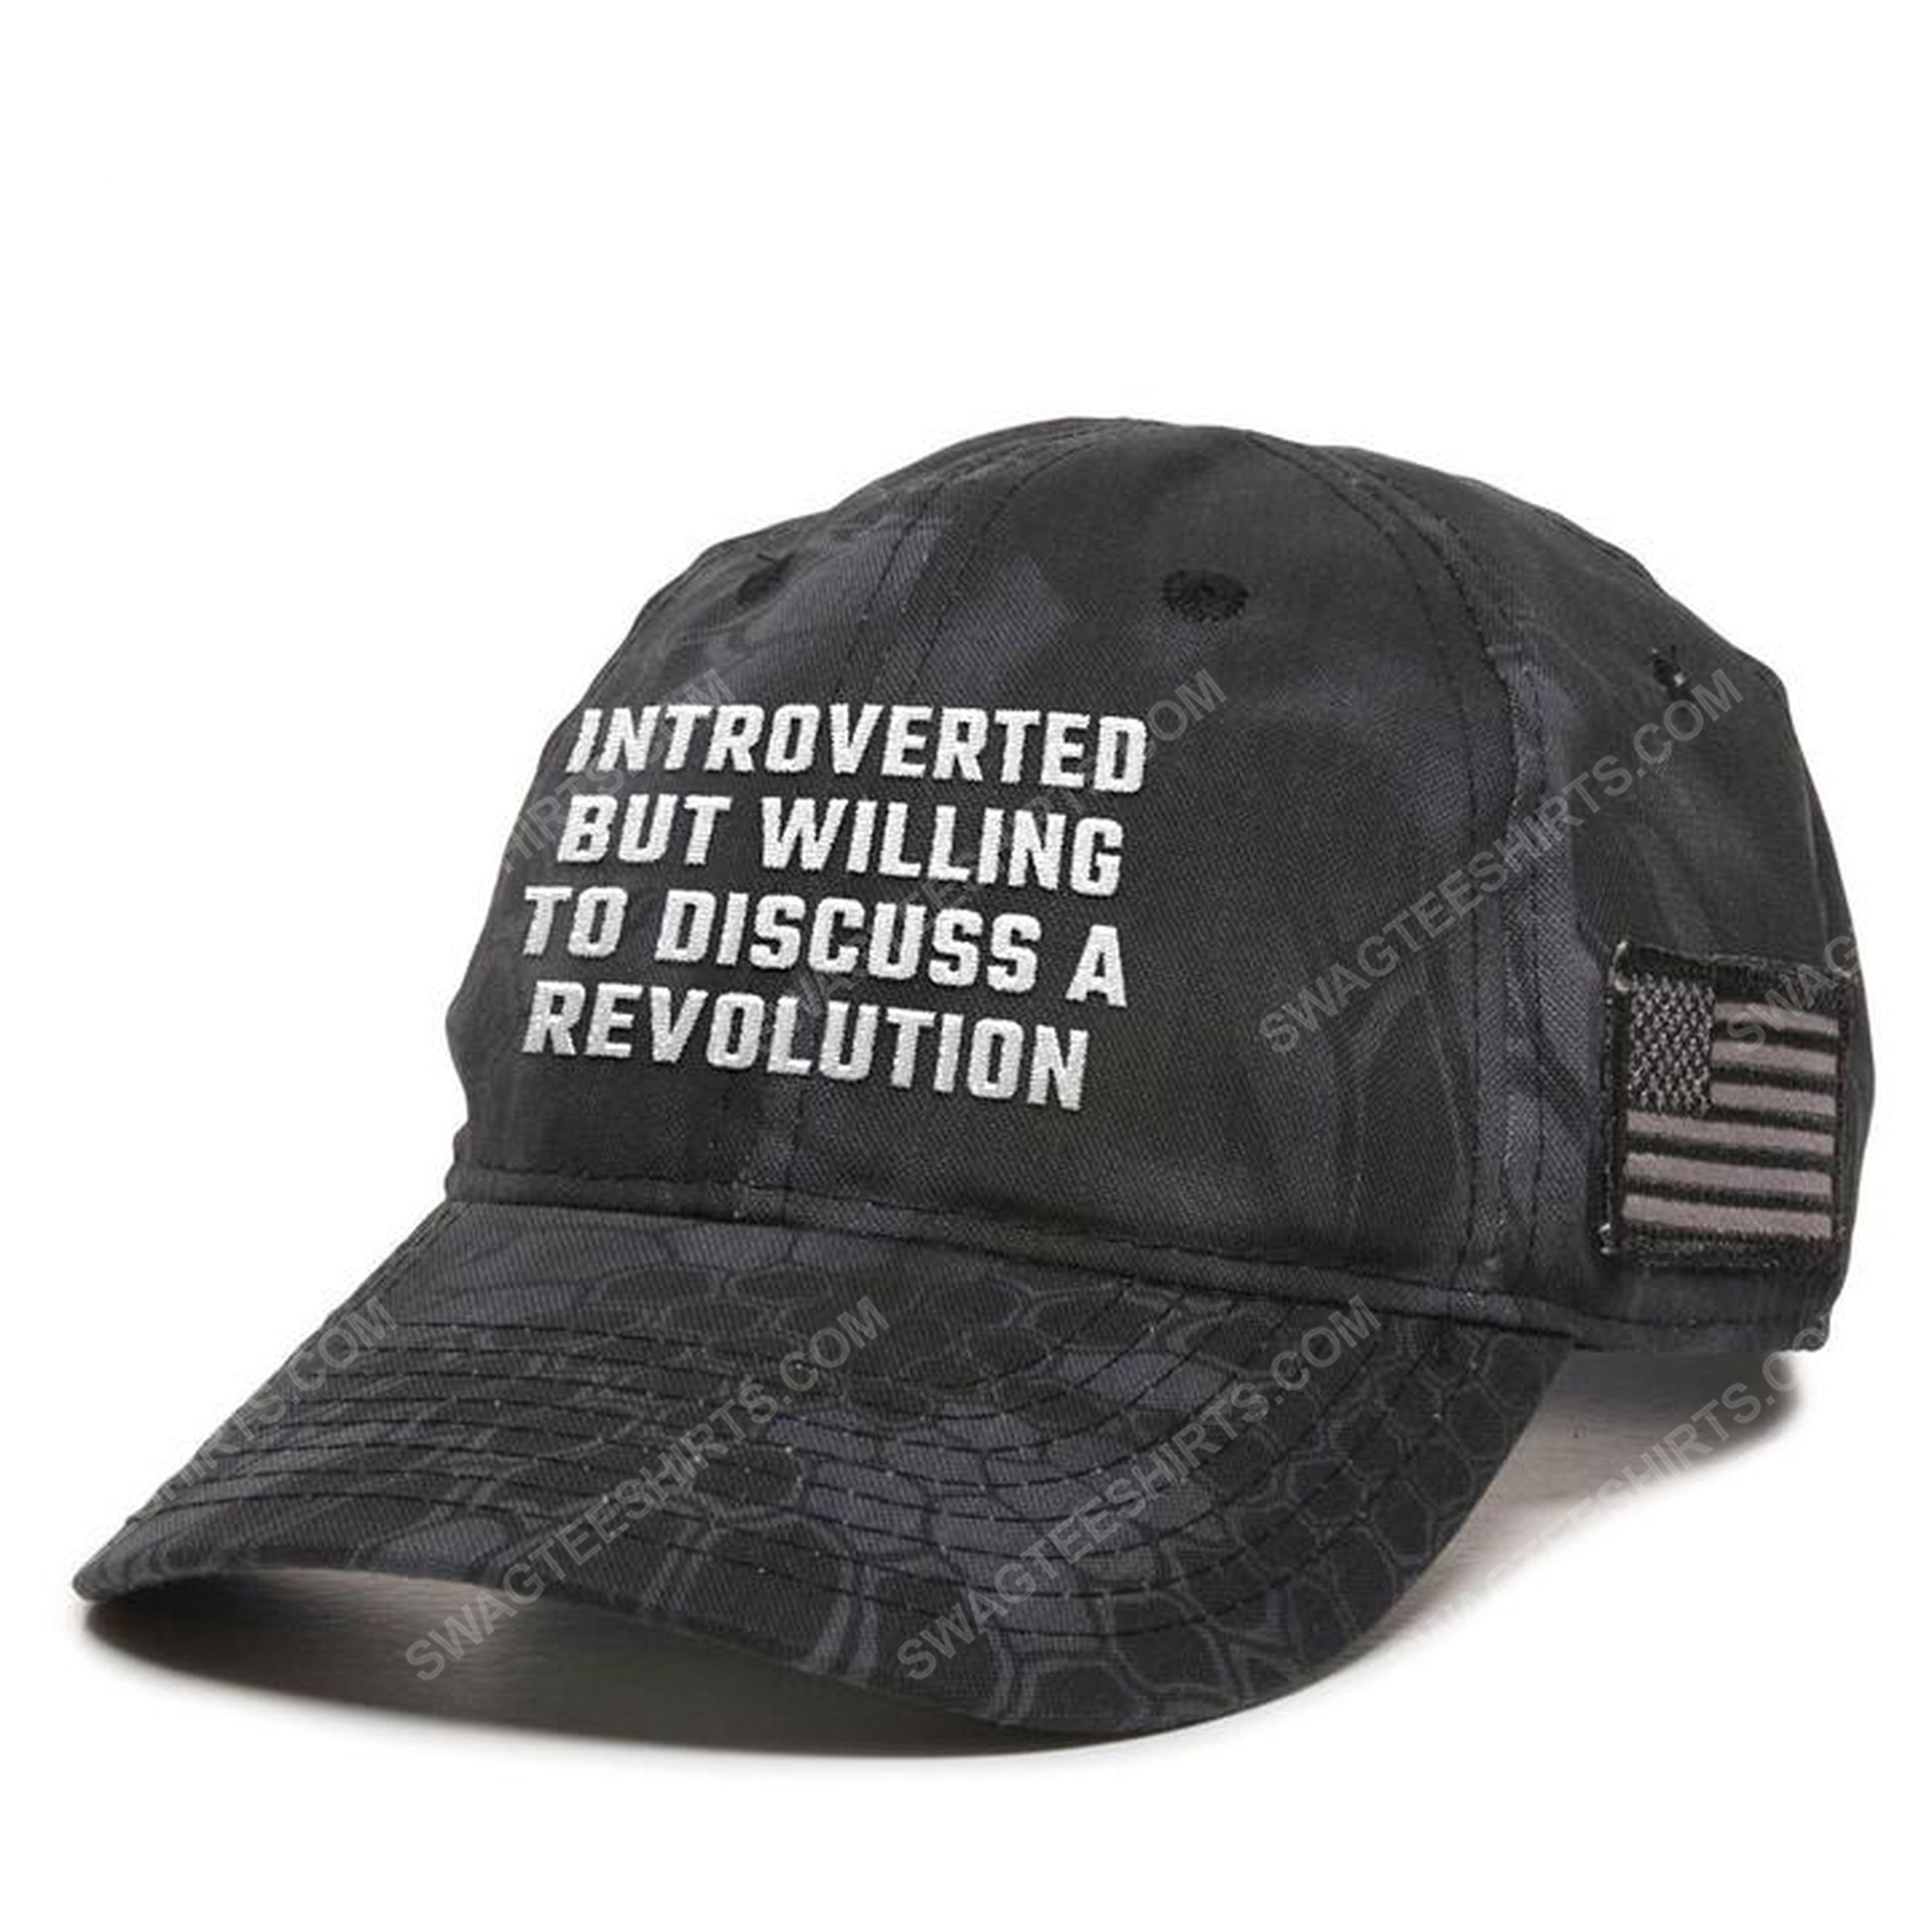 Introverted but willing to discuss a revolution full print classic hat 1